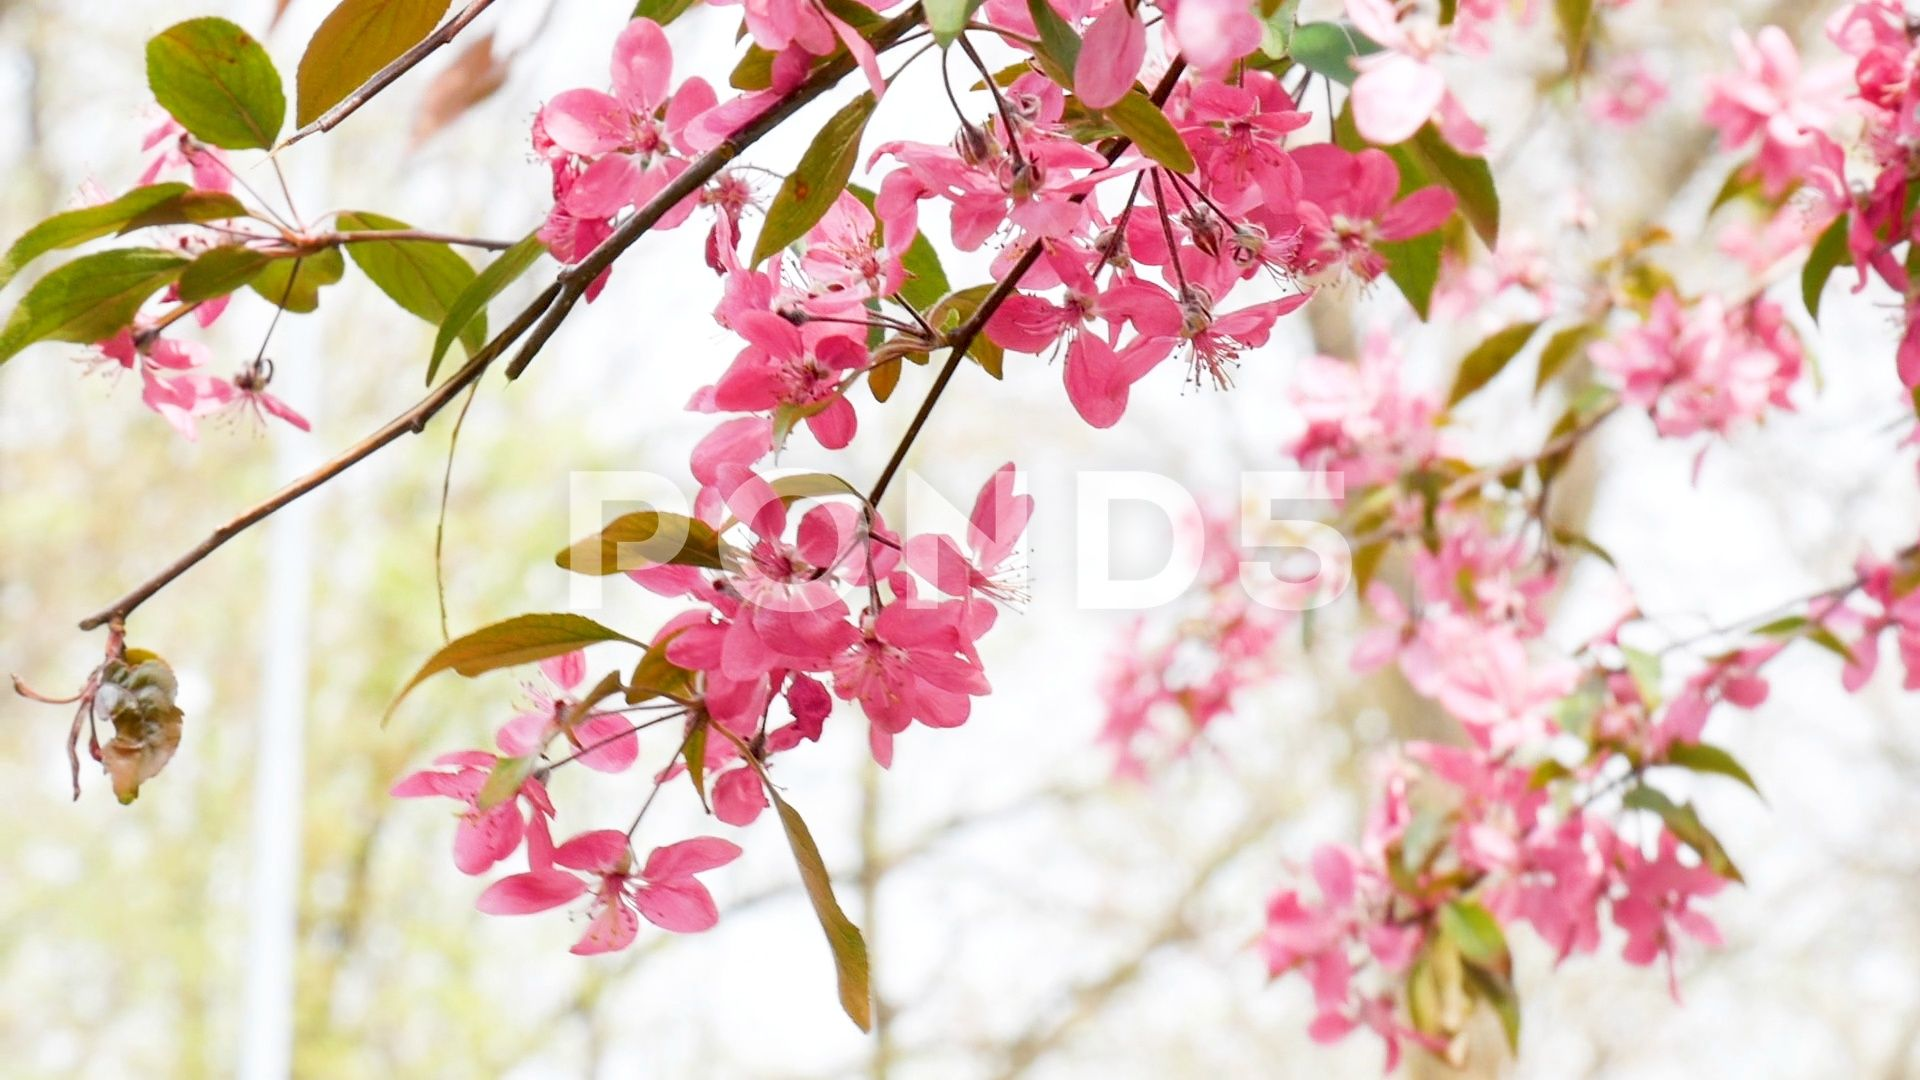 Crab Apple Branches Full Of Fuchsia Flowers Moving On Wind In